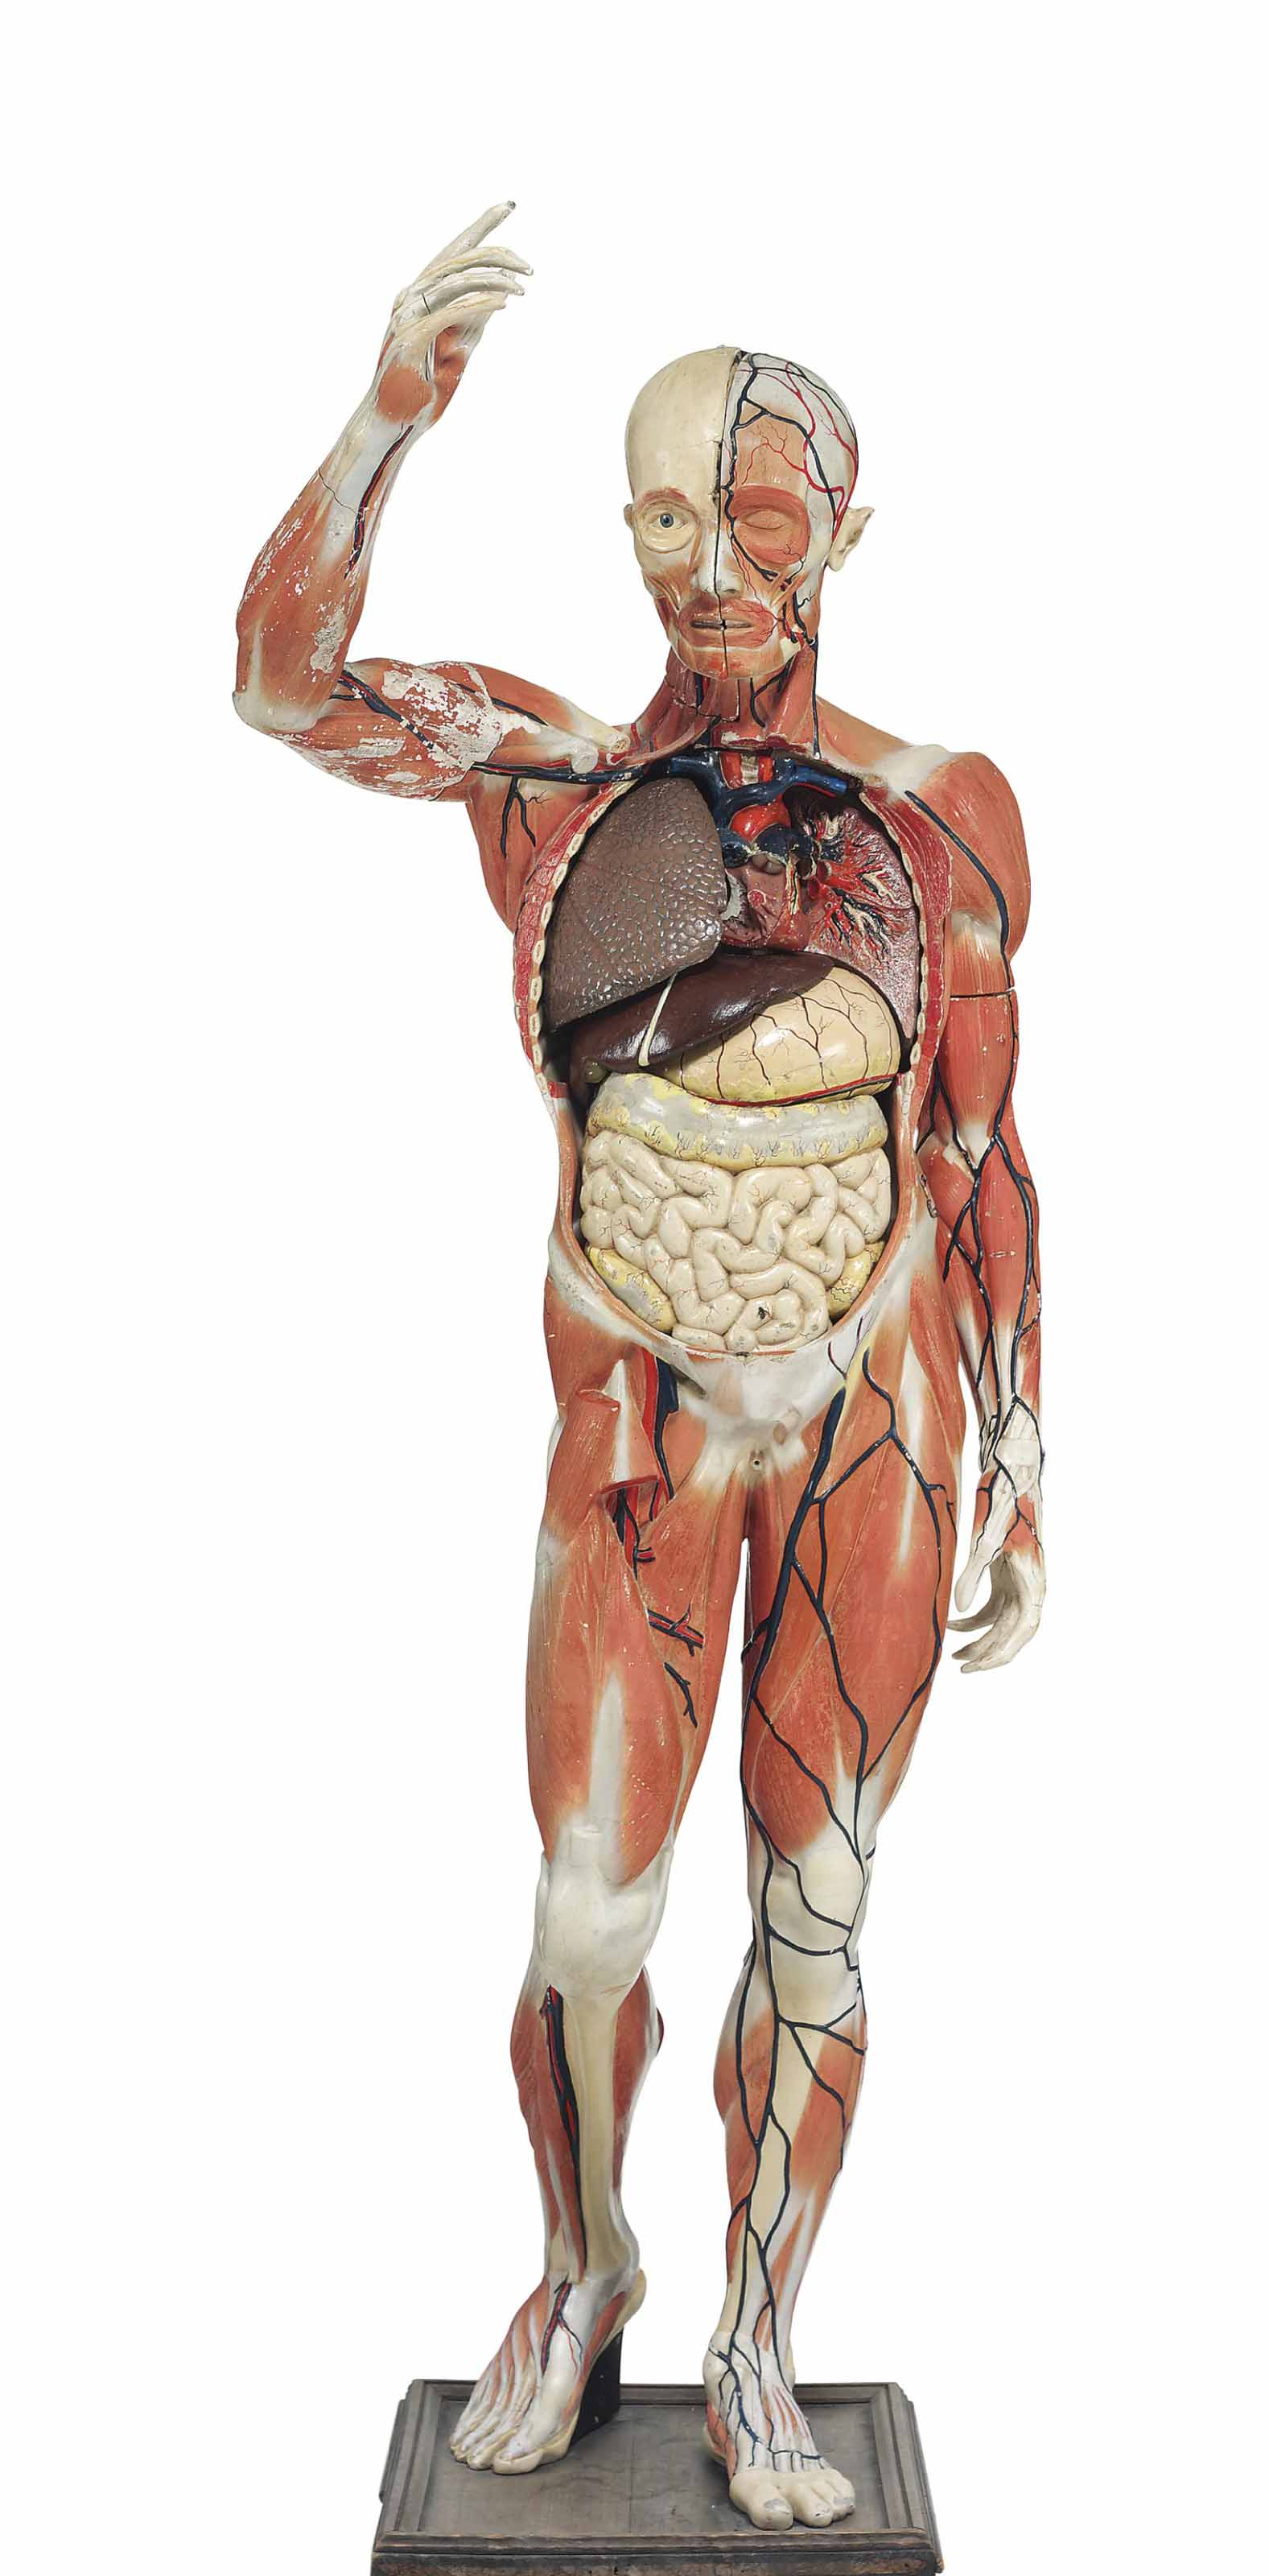 A French Polychrome Plaster Anatomical Model Of The Human Body